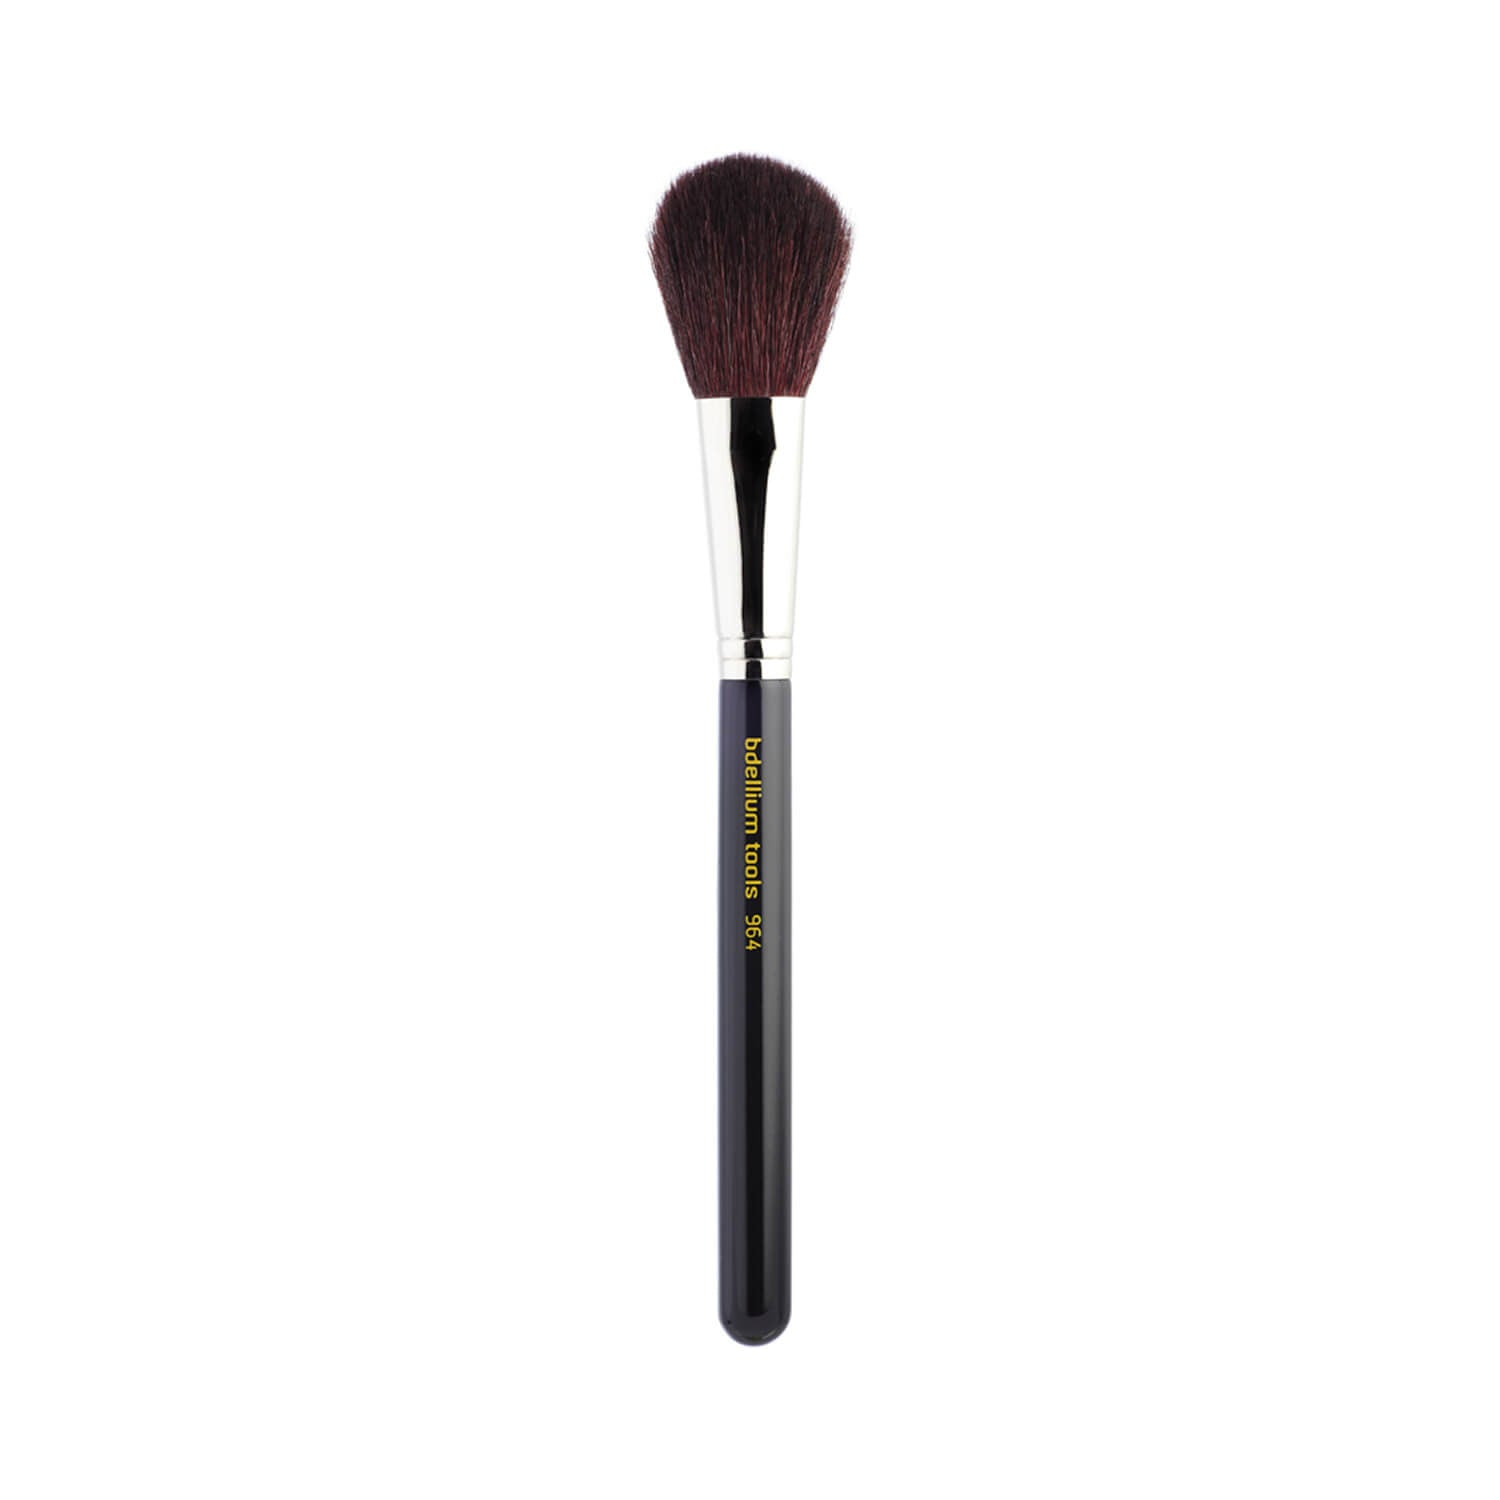 BDellium Tools Maestro Line 964 All Purpose Blusher Brush Black